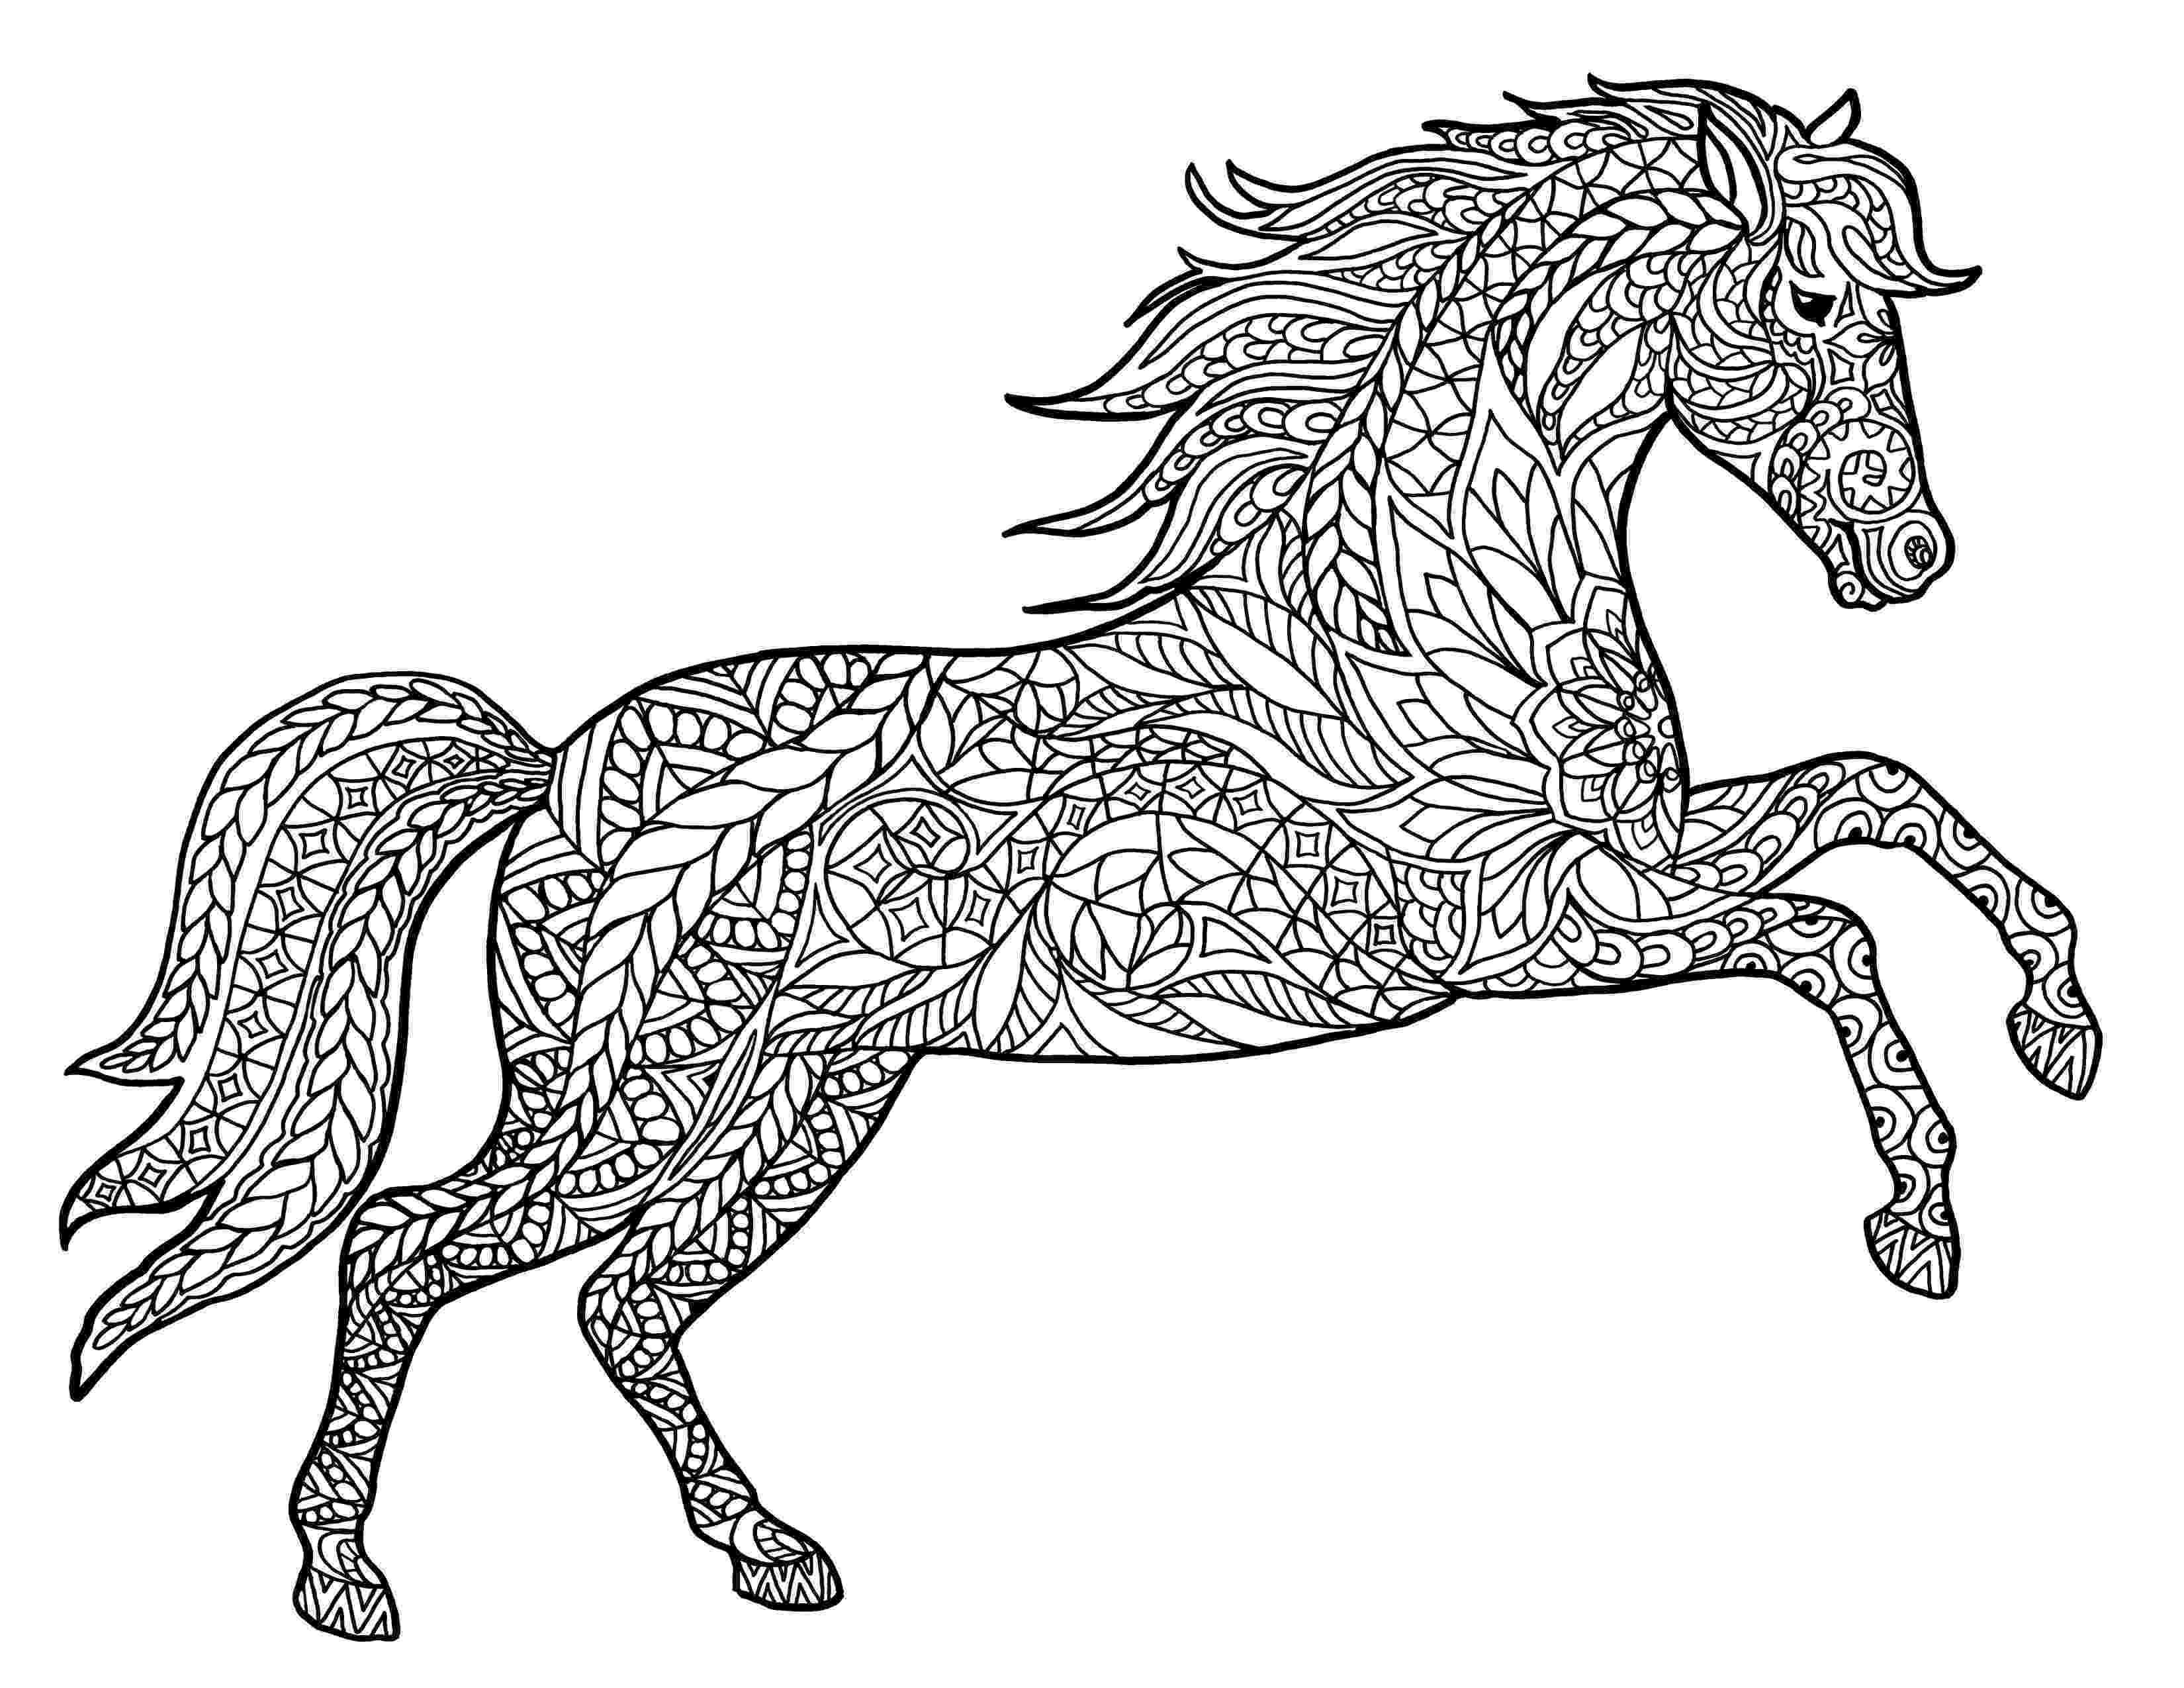 animal coloring pages to print adult coloring pages animals best coloring pages for kids coloring pages animal print to